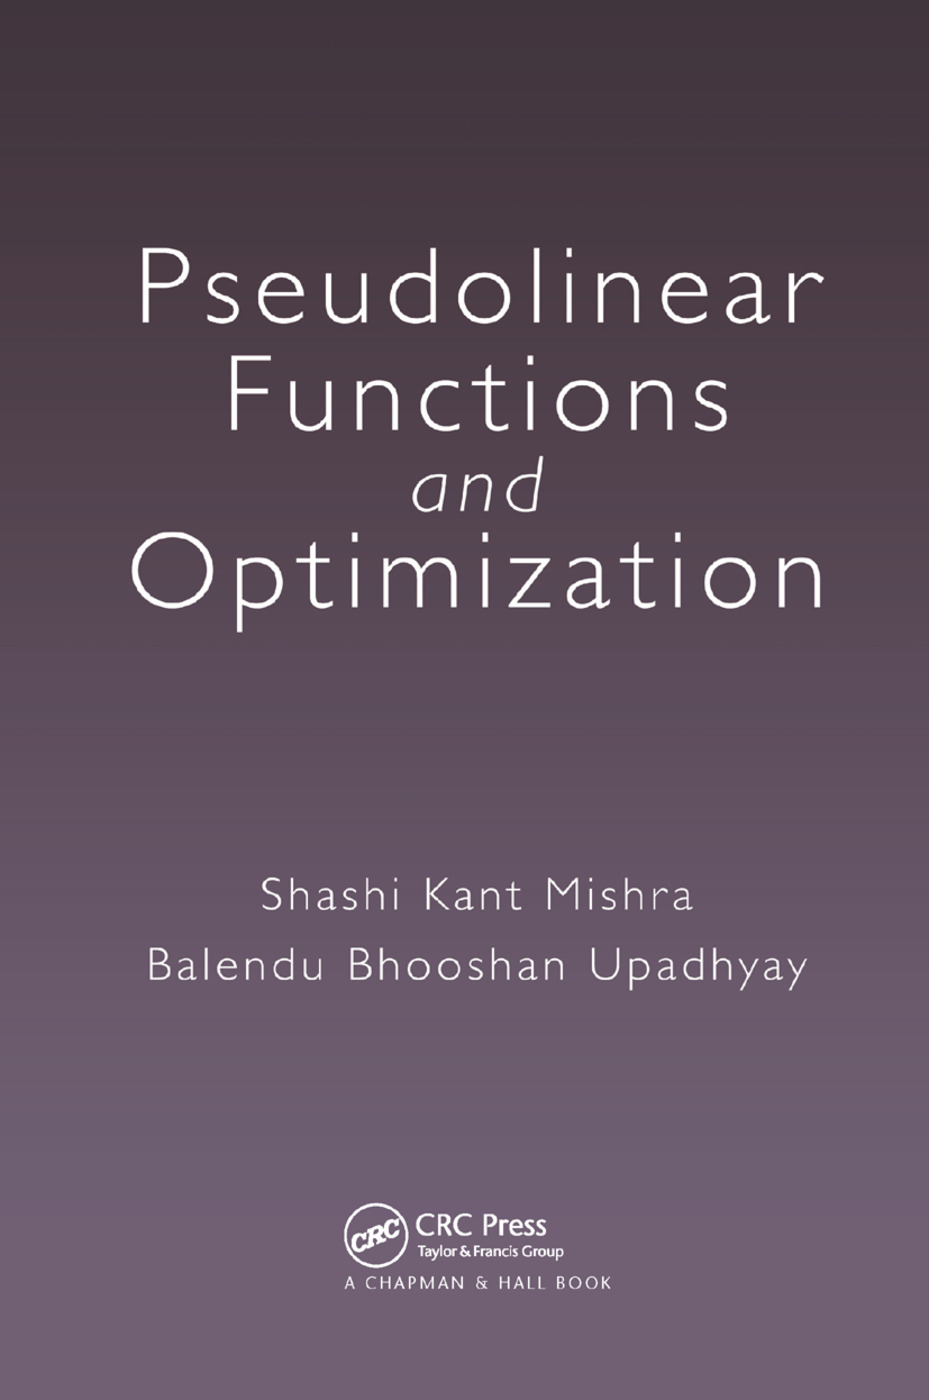 Pseudolinear Functions and Optimization